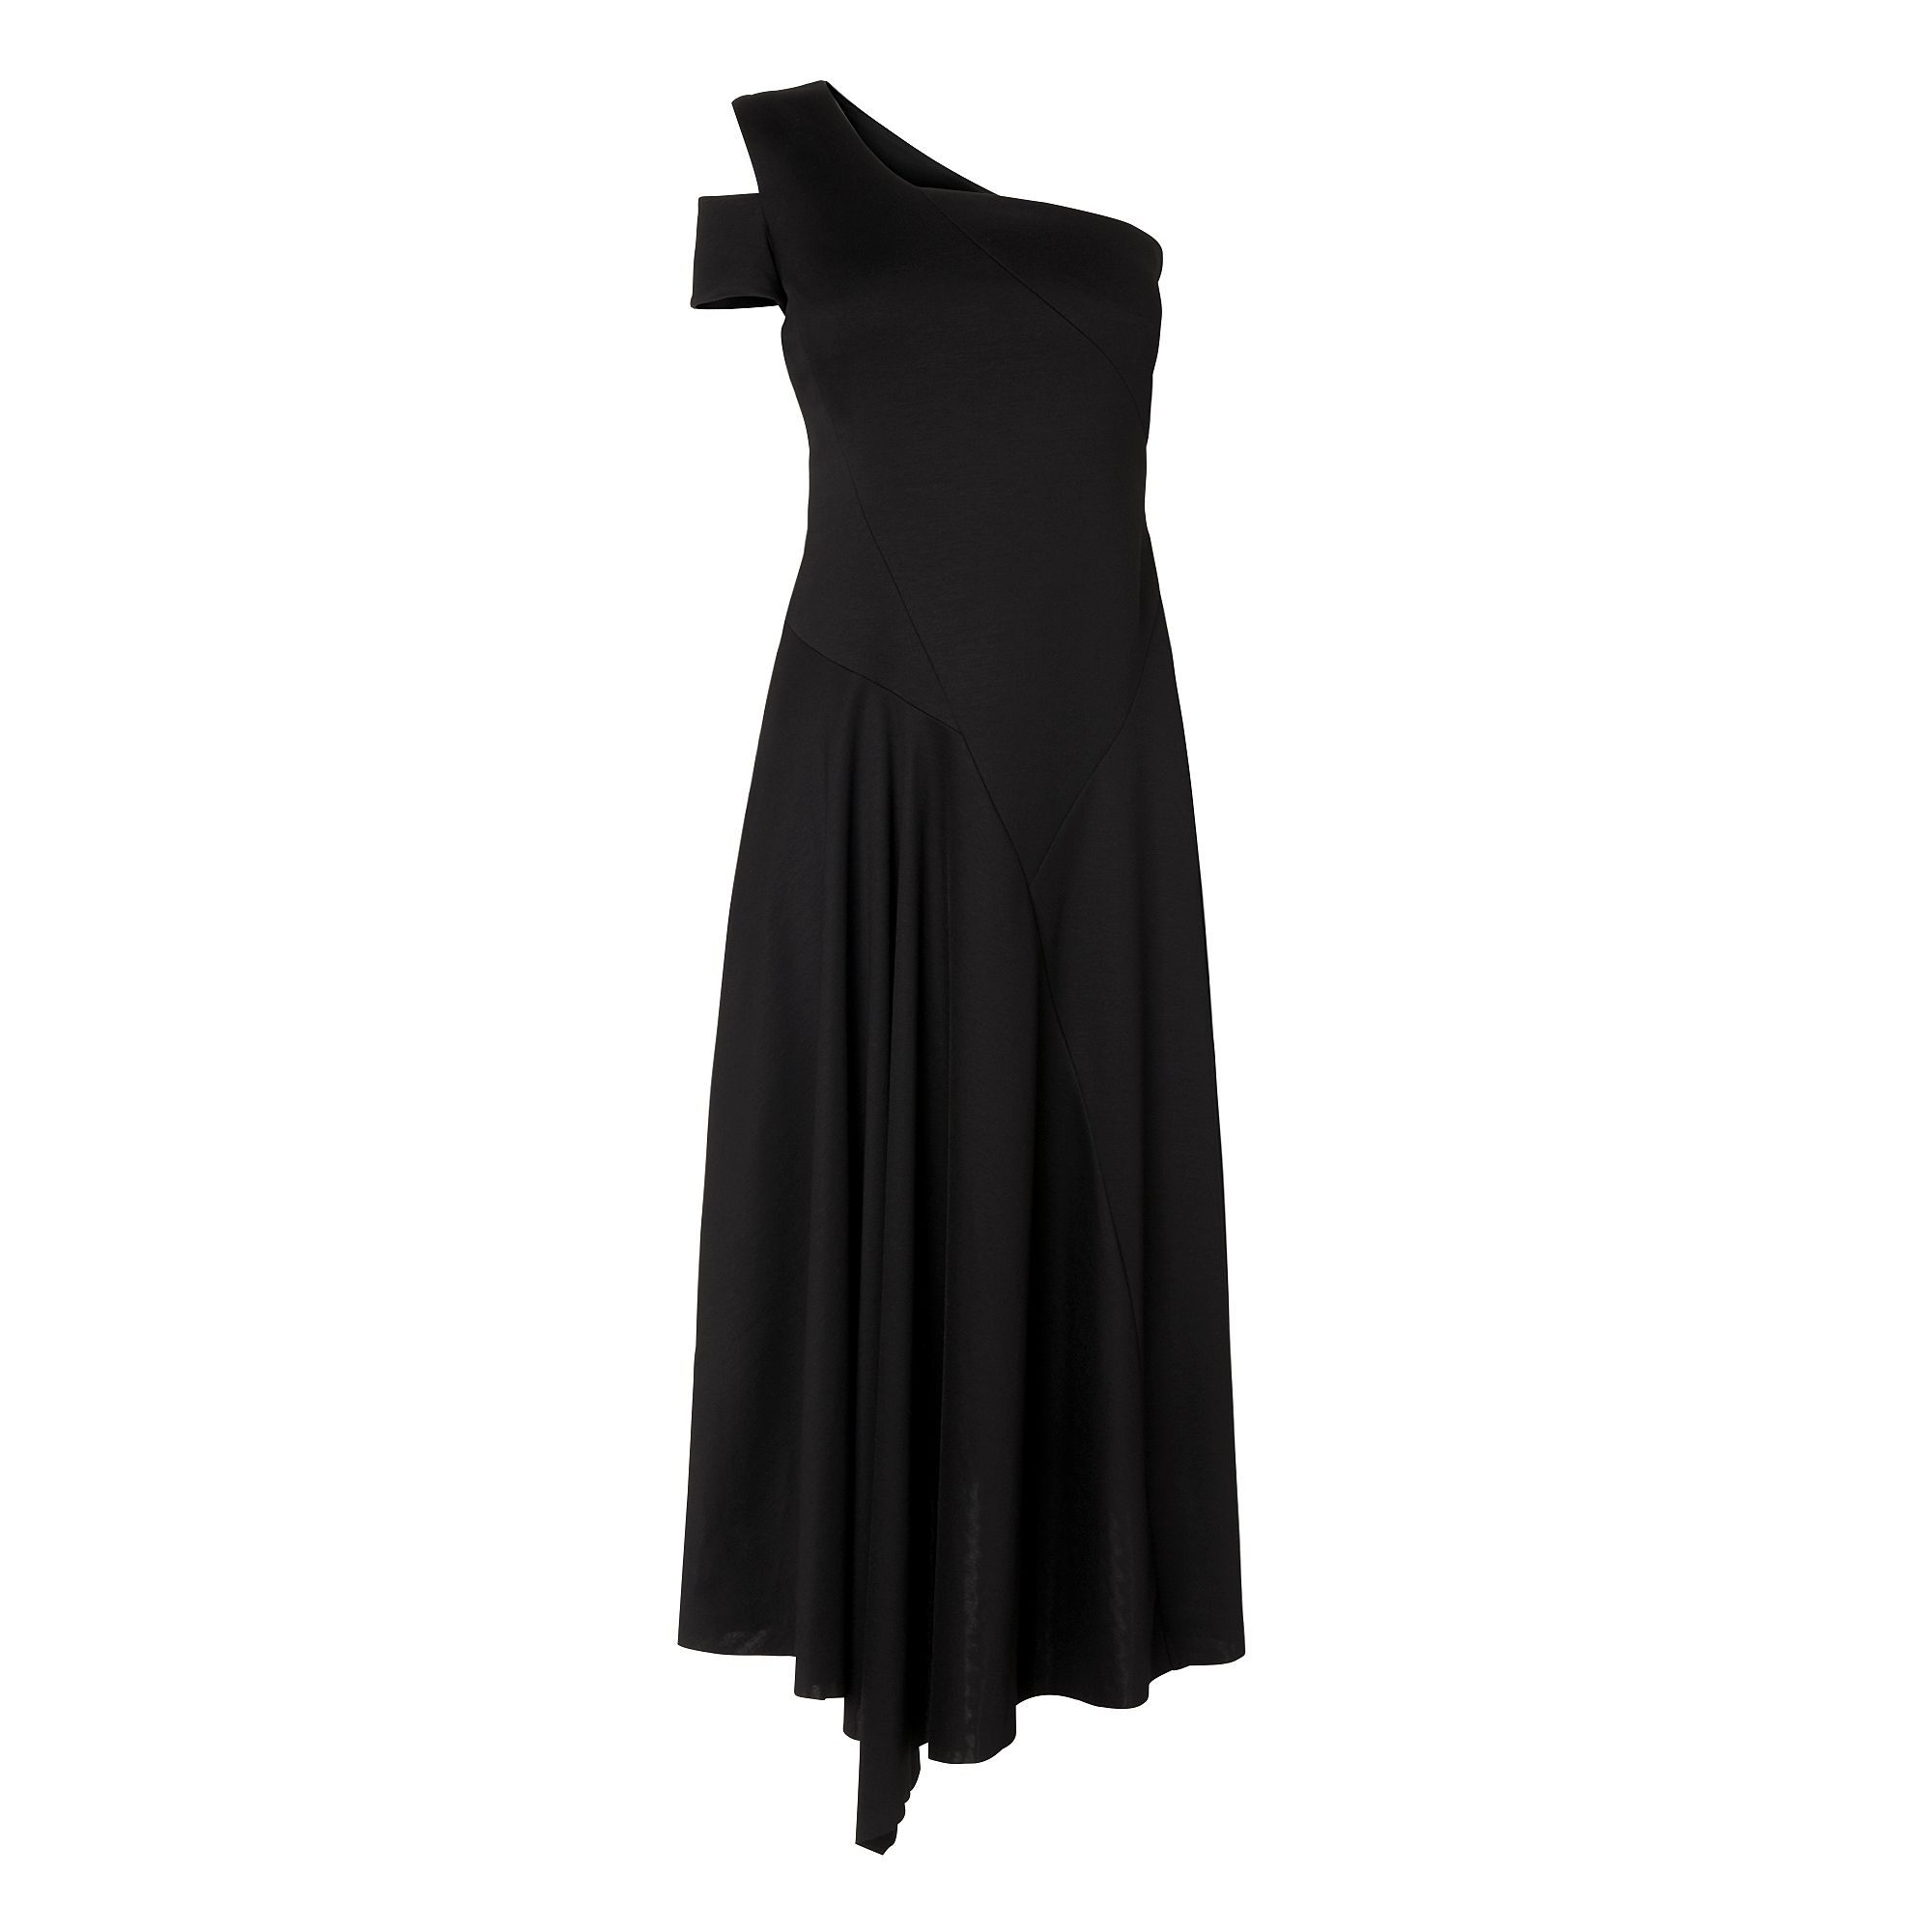 L.K. Bennett Lavendar Asymetric Dress, Black